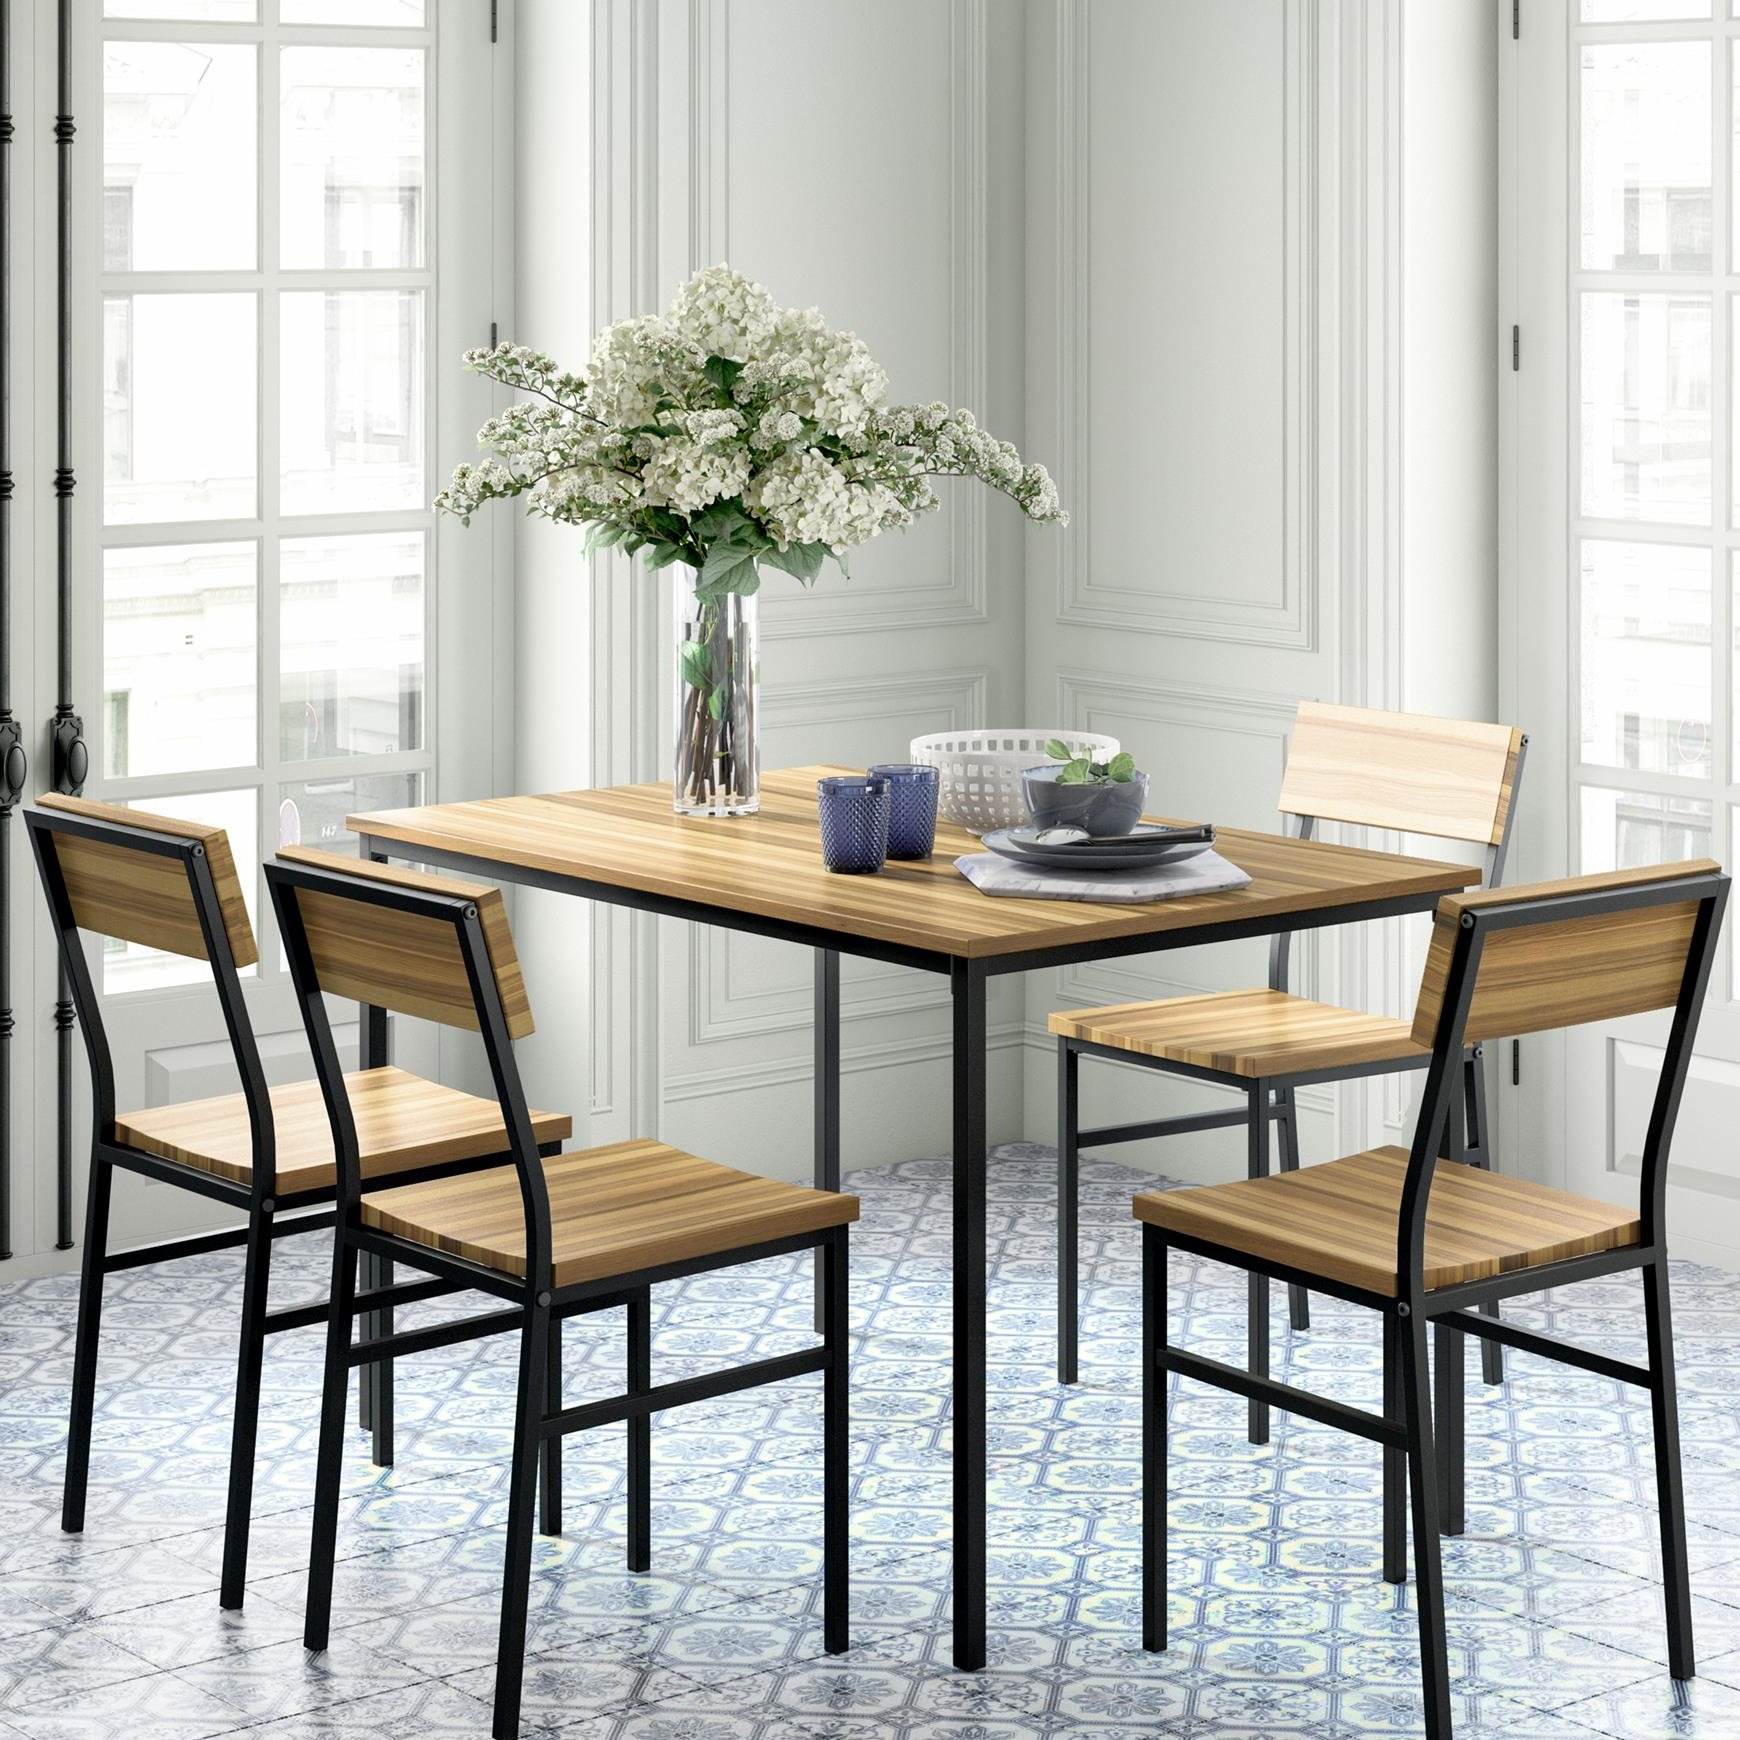 Kieffer 5 Piece Dining Sets Intended For Well Known Novogratz Linden 5 Piece Dining Set (#7 of 20)